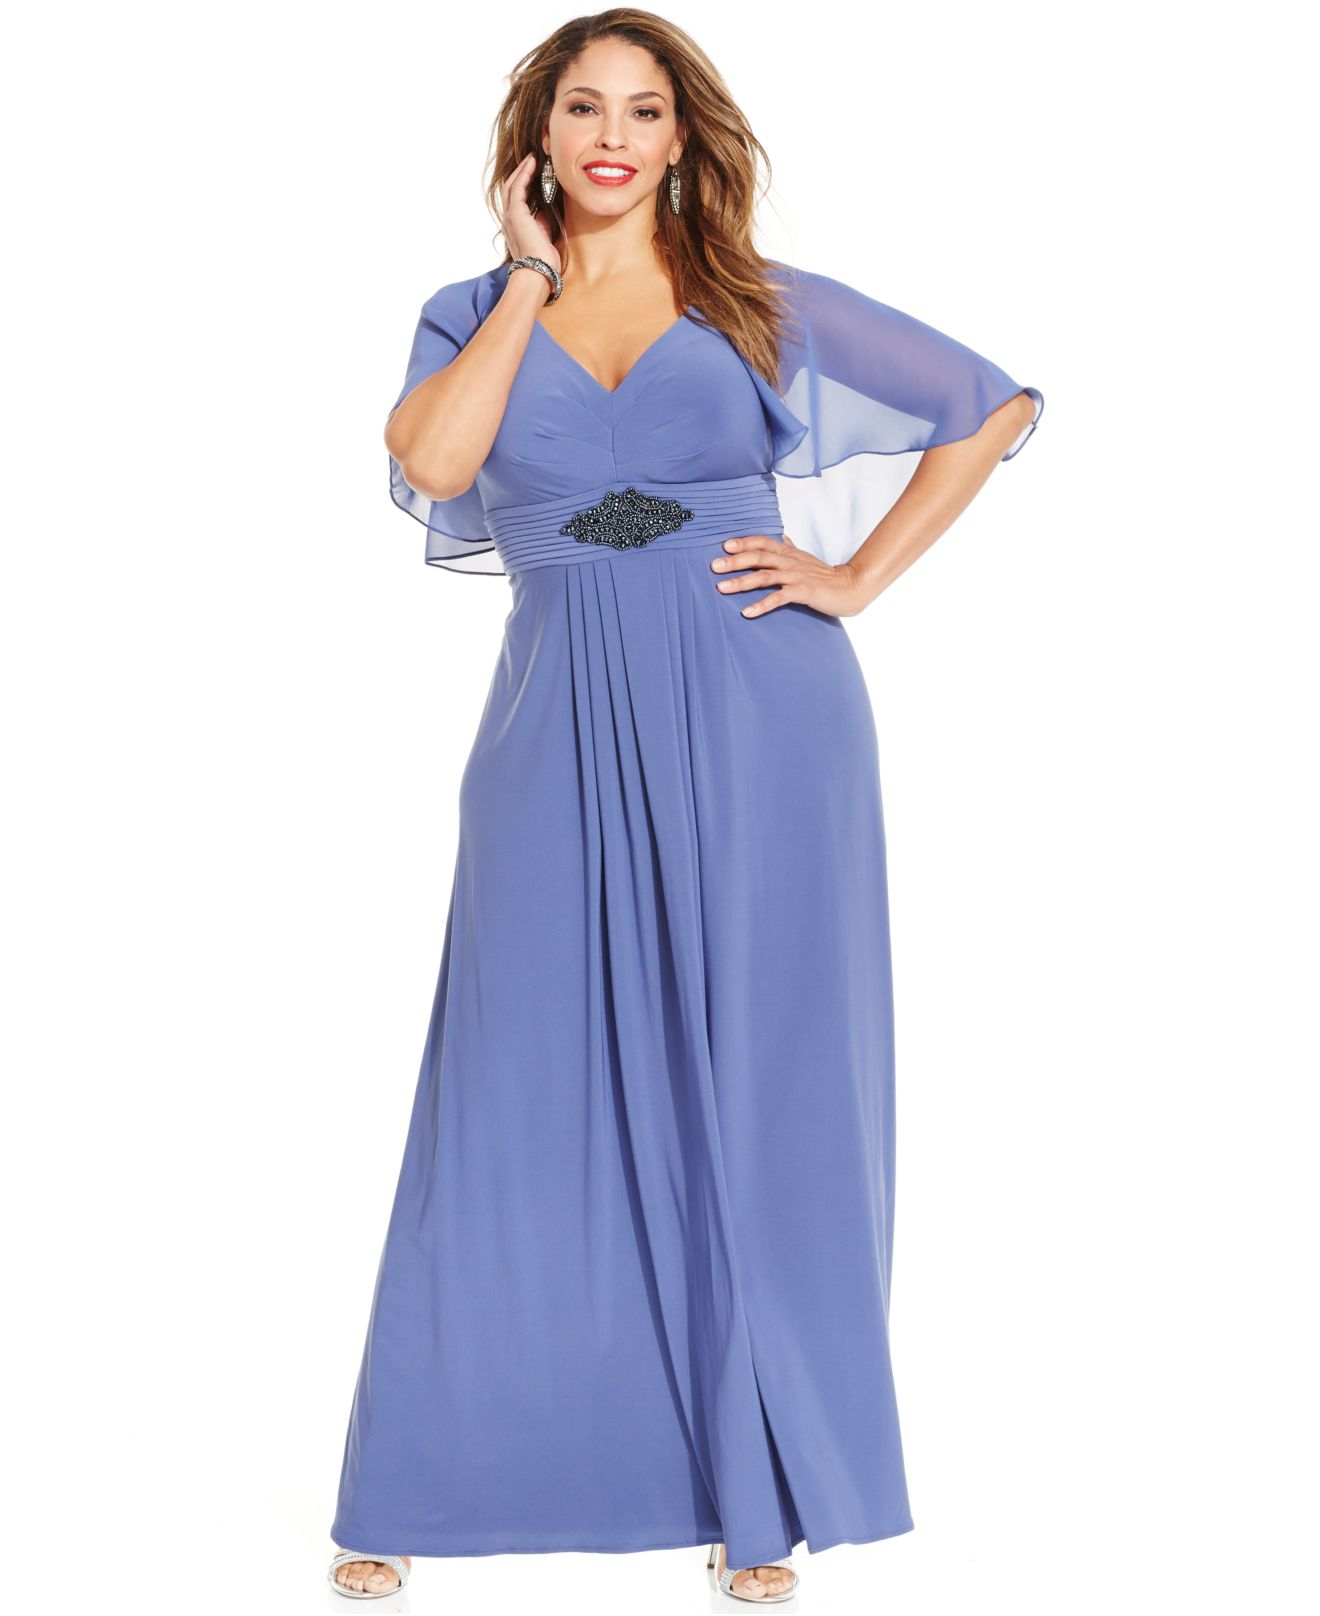 4eb4733f6fa Patra Plus Size Long Dress With Attached Cape in Blue - Lyst